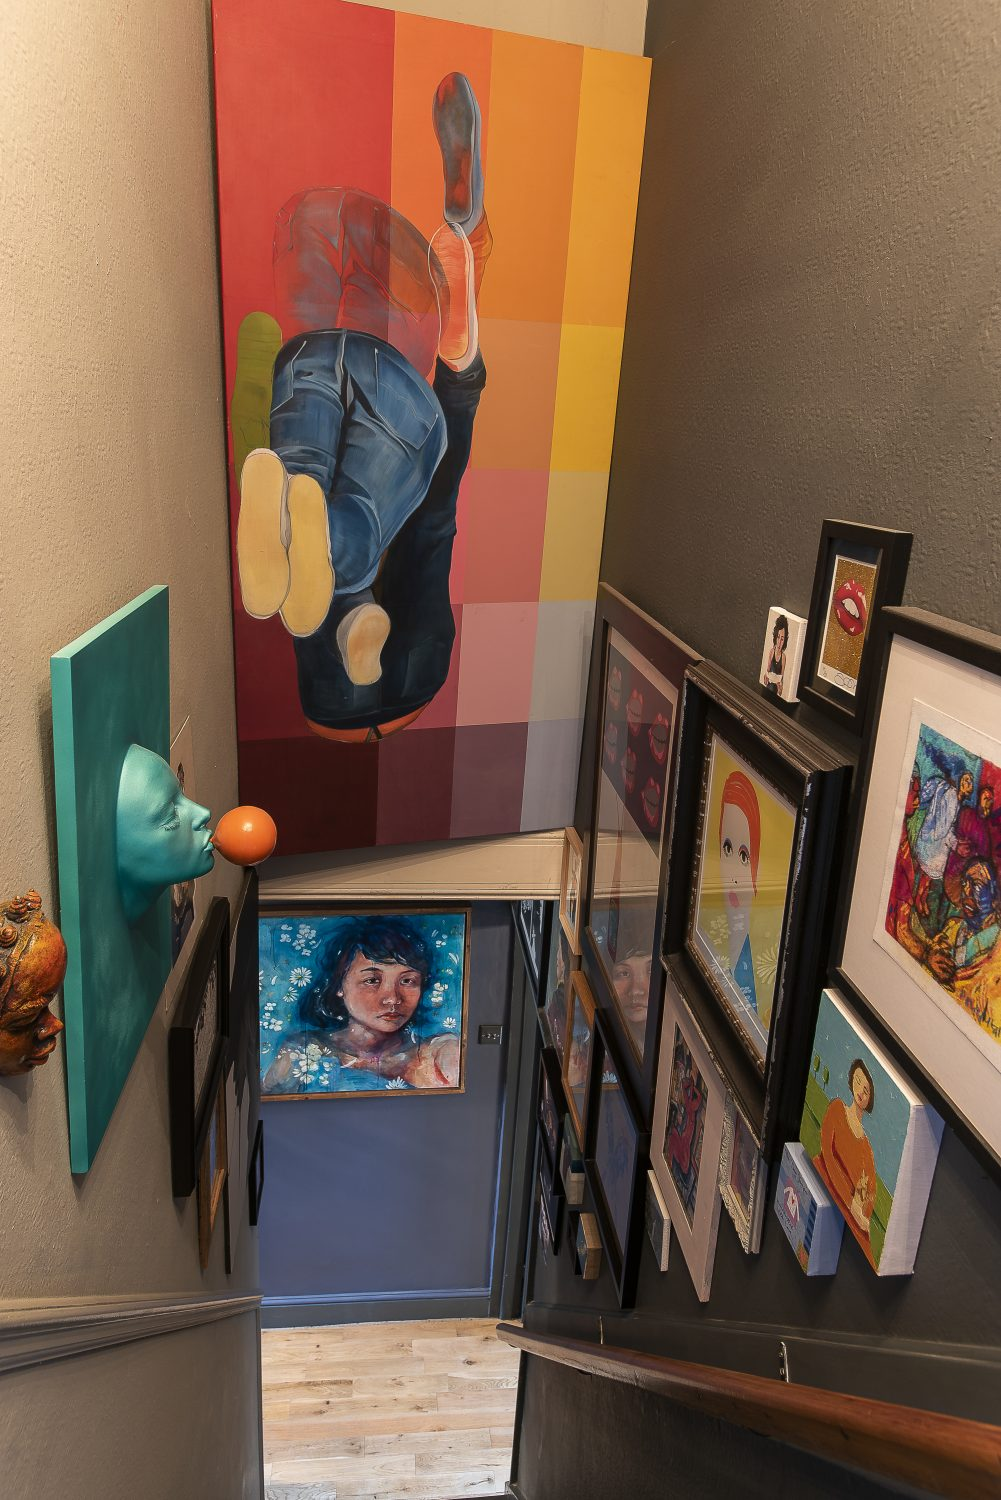 Prints, paintings and sculptures of assorted sizes cover the walls on either side of the staircase